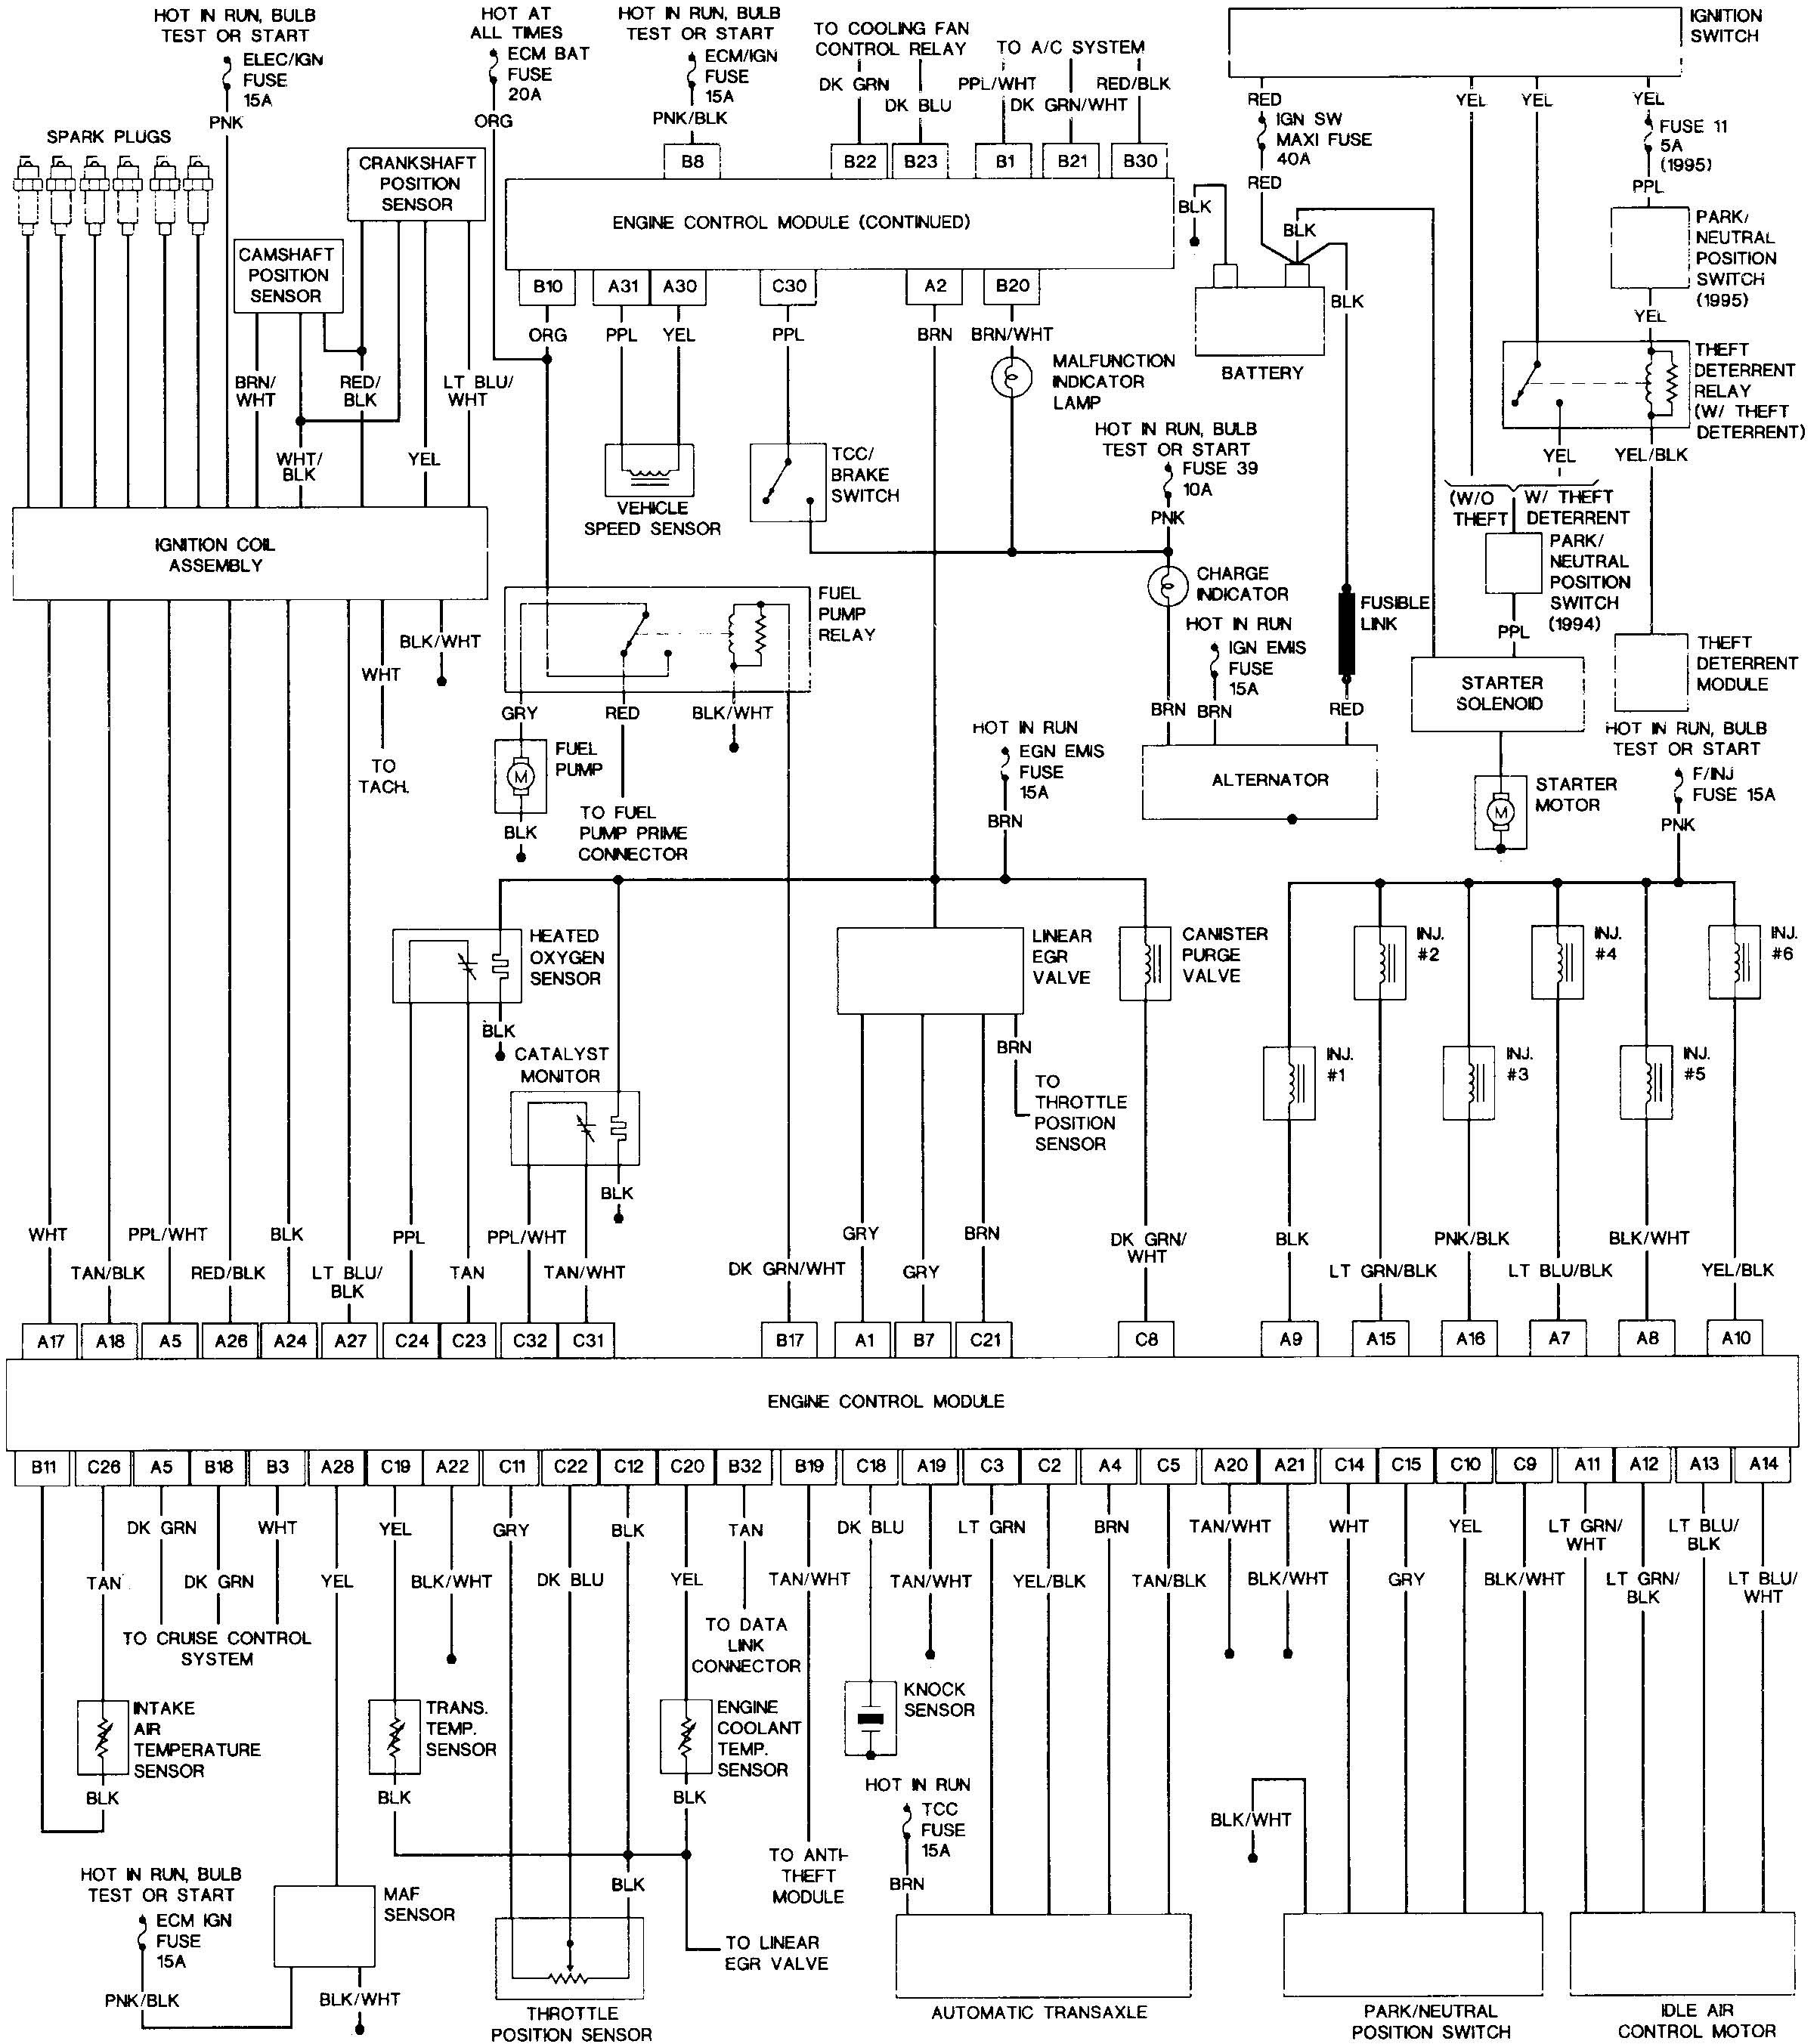 2004 Jeep Grand Cherokee Engine Diagram 2000 Jeep Grand Cherokee Radio Wiring Diagram Elvenlabs Of 2004 Jeep Grand Cherokee Engine Diagram